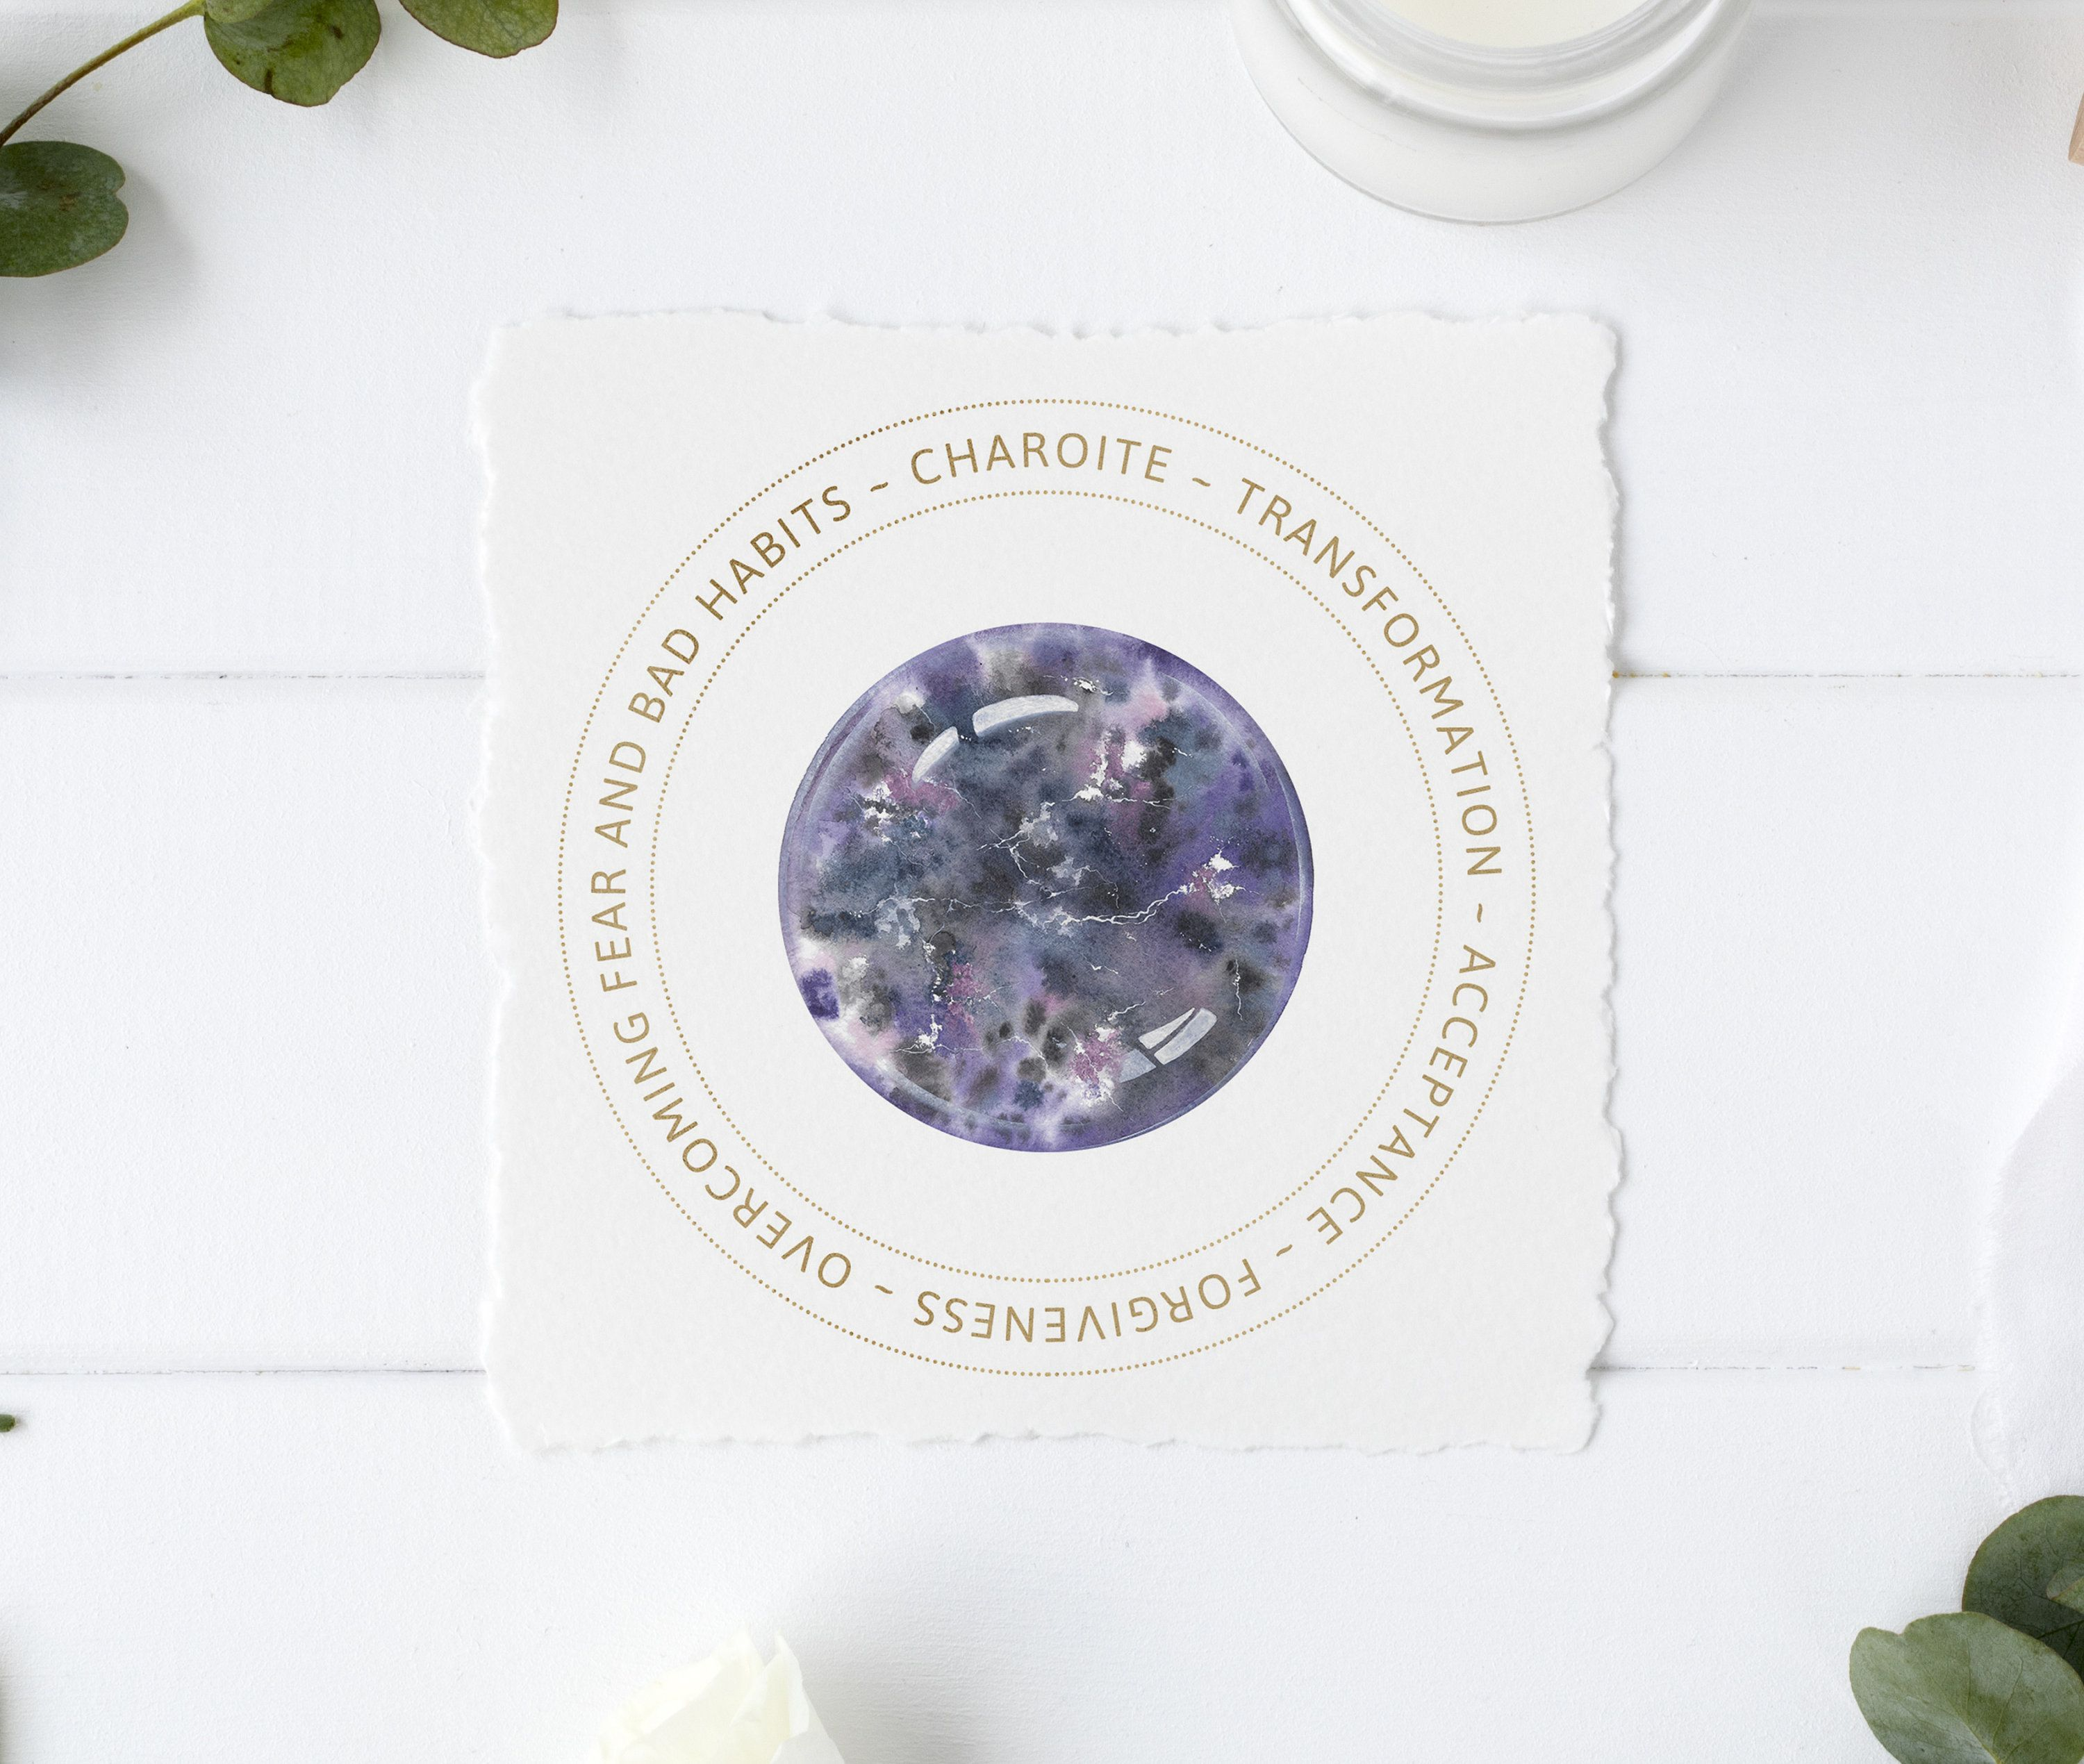 Charoite Crystal Meaning Card - Jewelry Display Card - Printable File - Crystal Meaning Card - Jewelry Gift Box Card - Product Tag - Labels For - #Box #Card #Charoite #Crystal #Display #File #Gift #Jewelry #labels #Meaning #Printable #Product #Tag #crystalmeanings